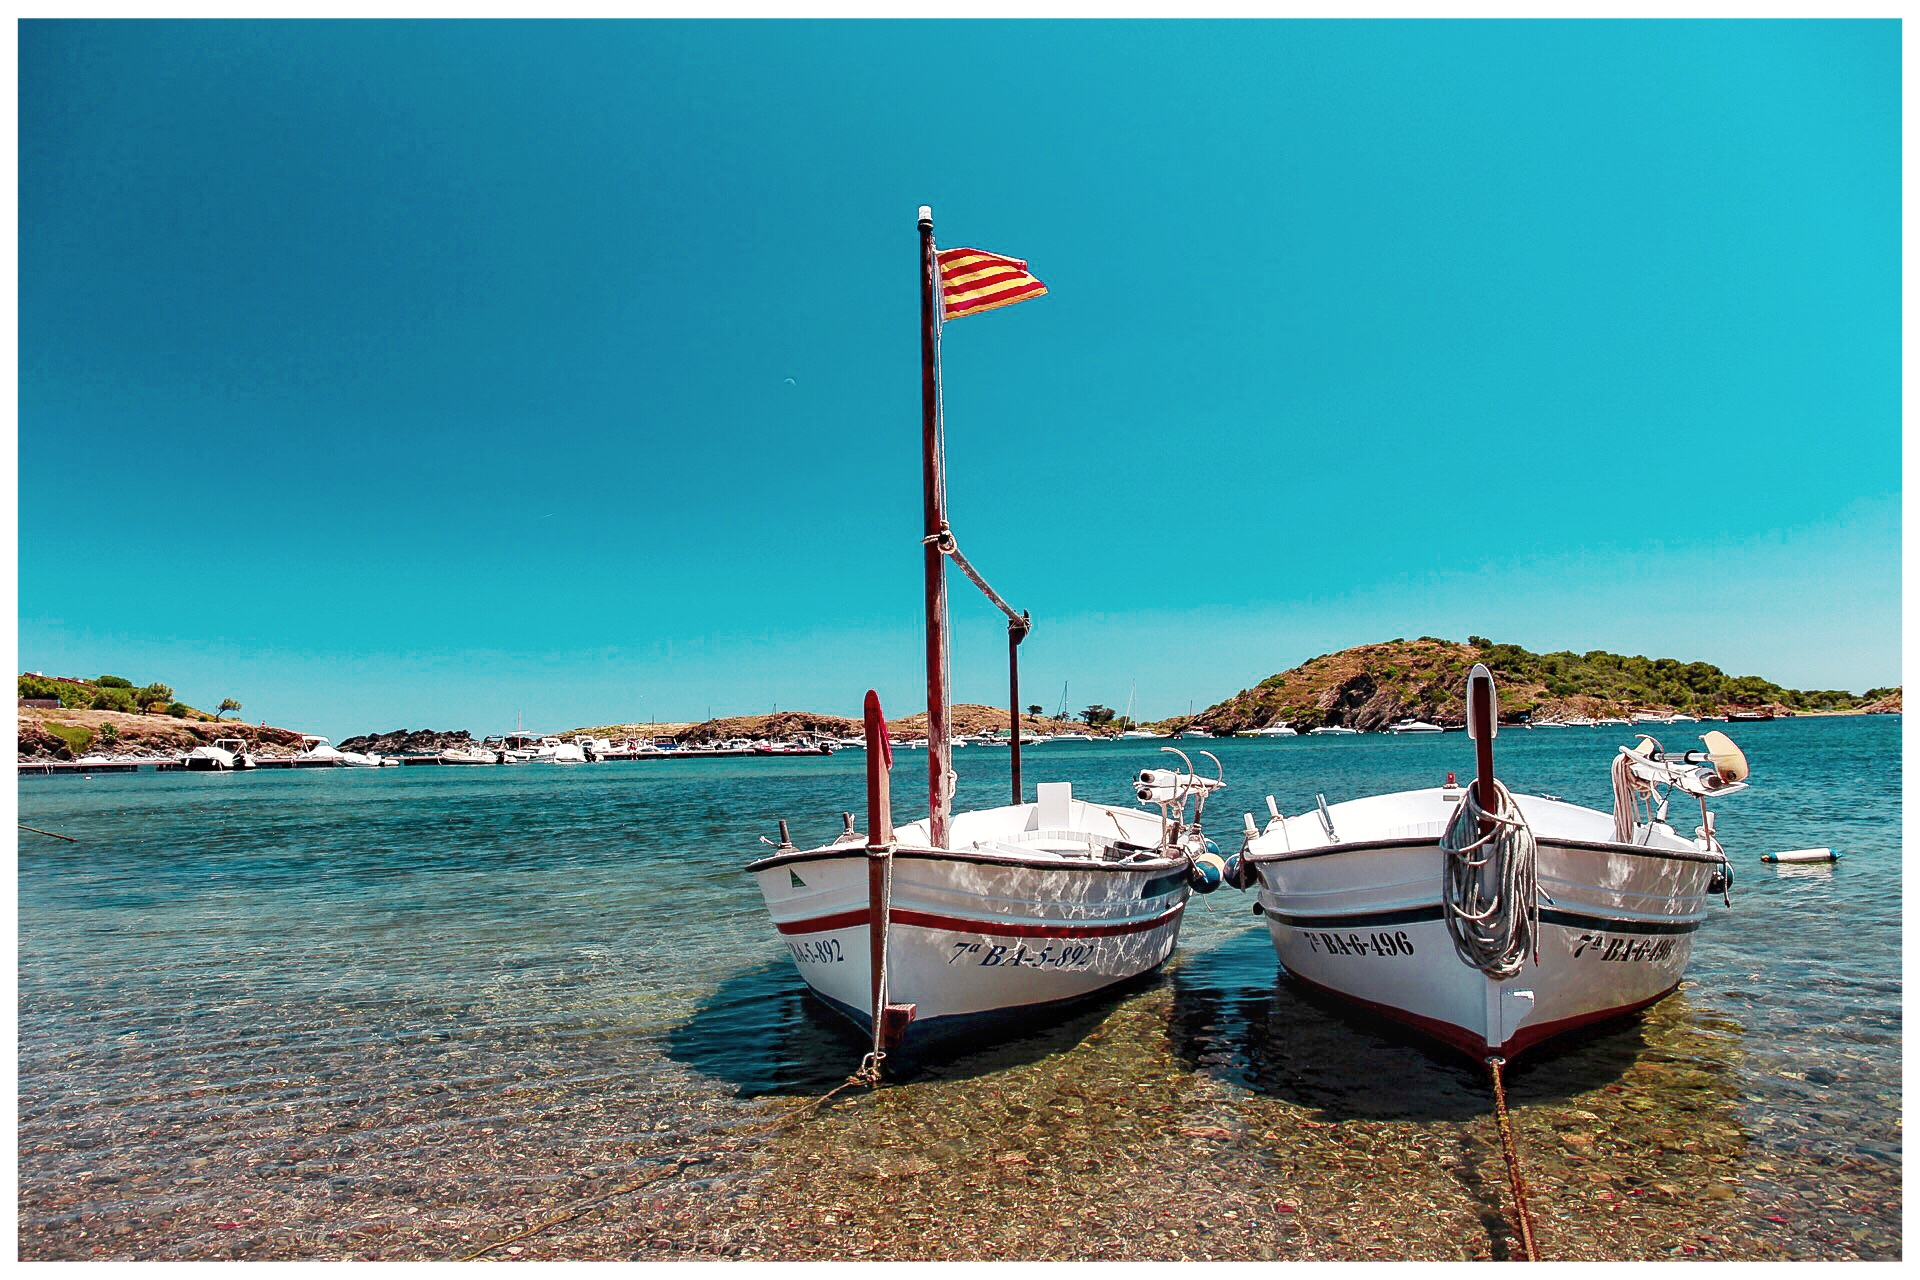 The Harbour outside Dali's house In Cadaqués